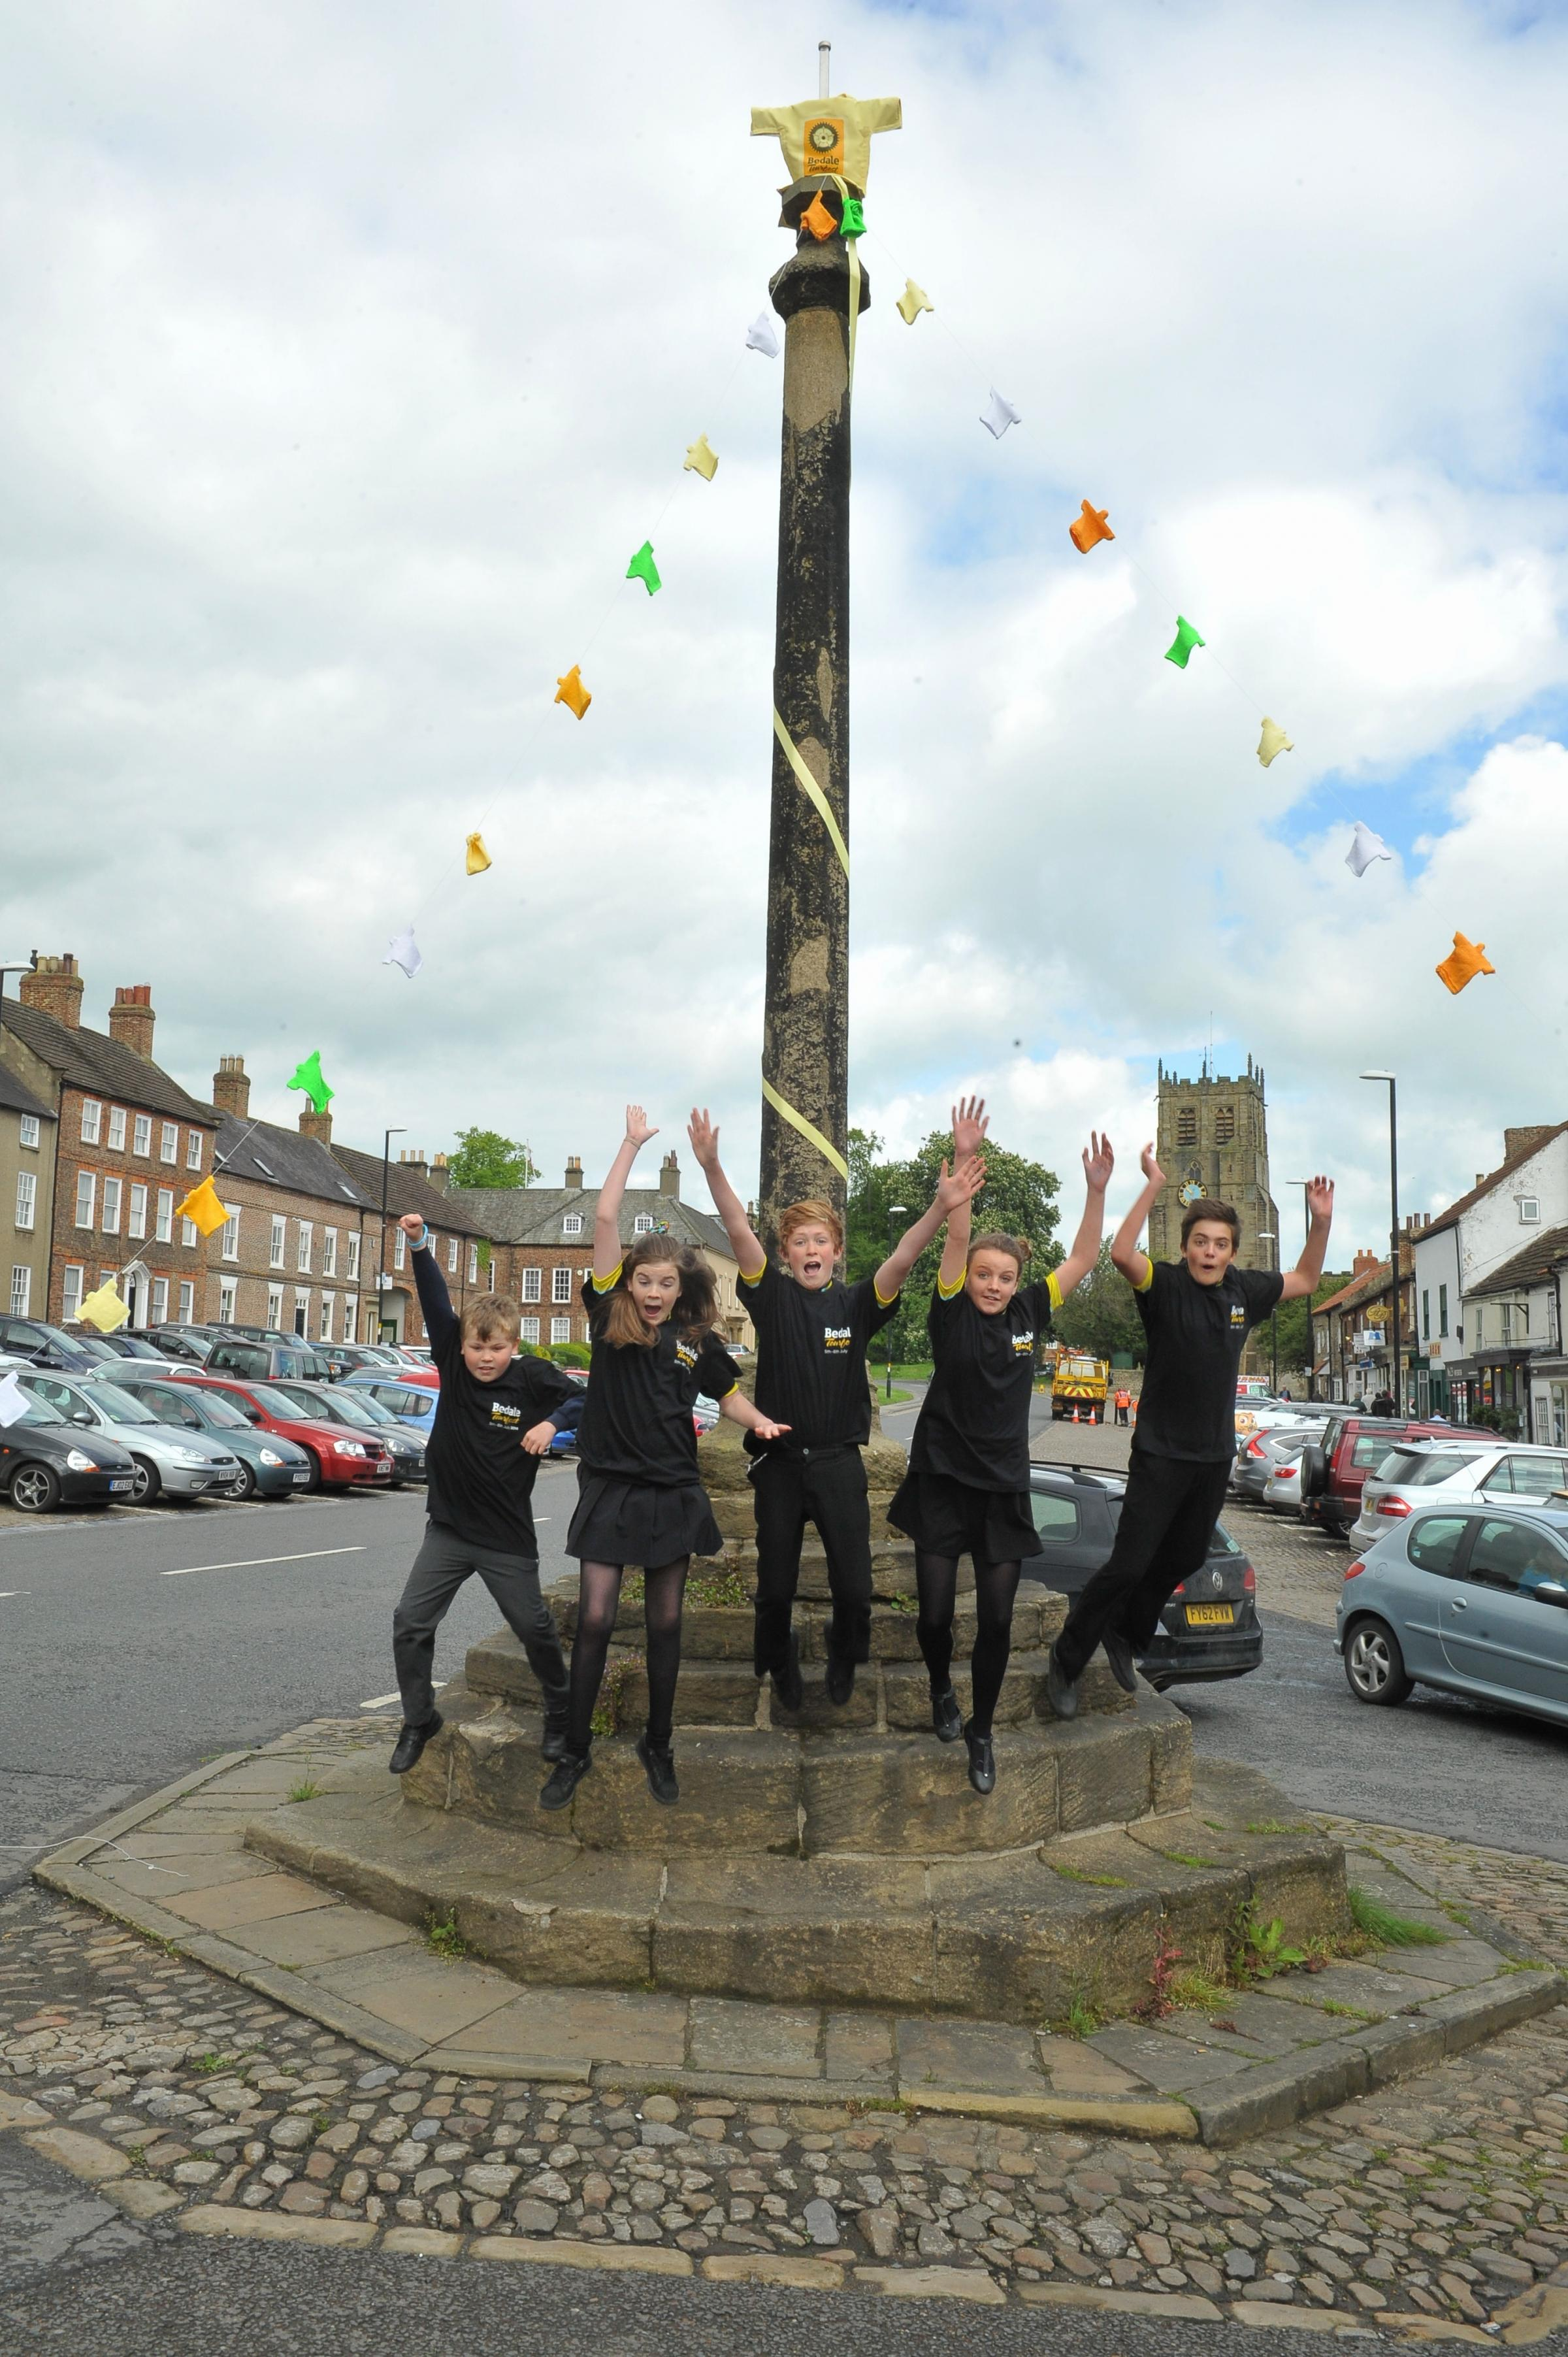 Tour ready:  Ned Reed, Cloe Gibbons, John Estensen,  Katie Simmons and Louis Keane help decorate the market cross